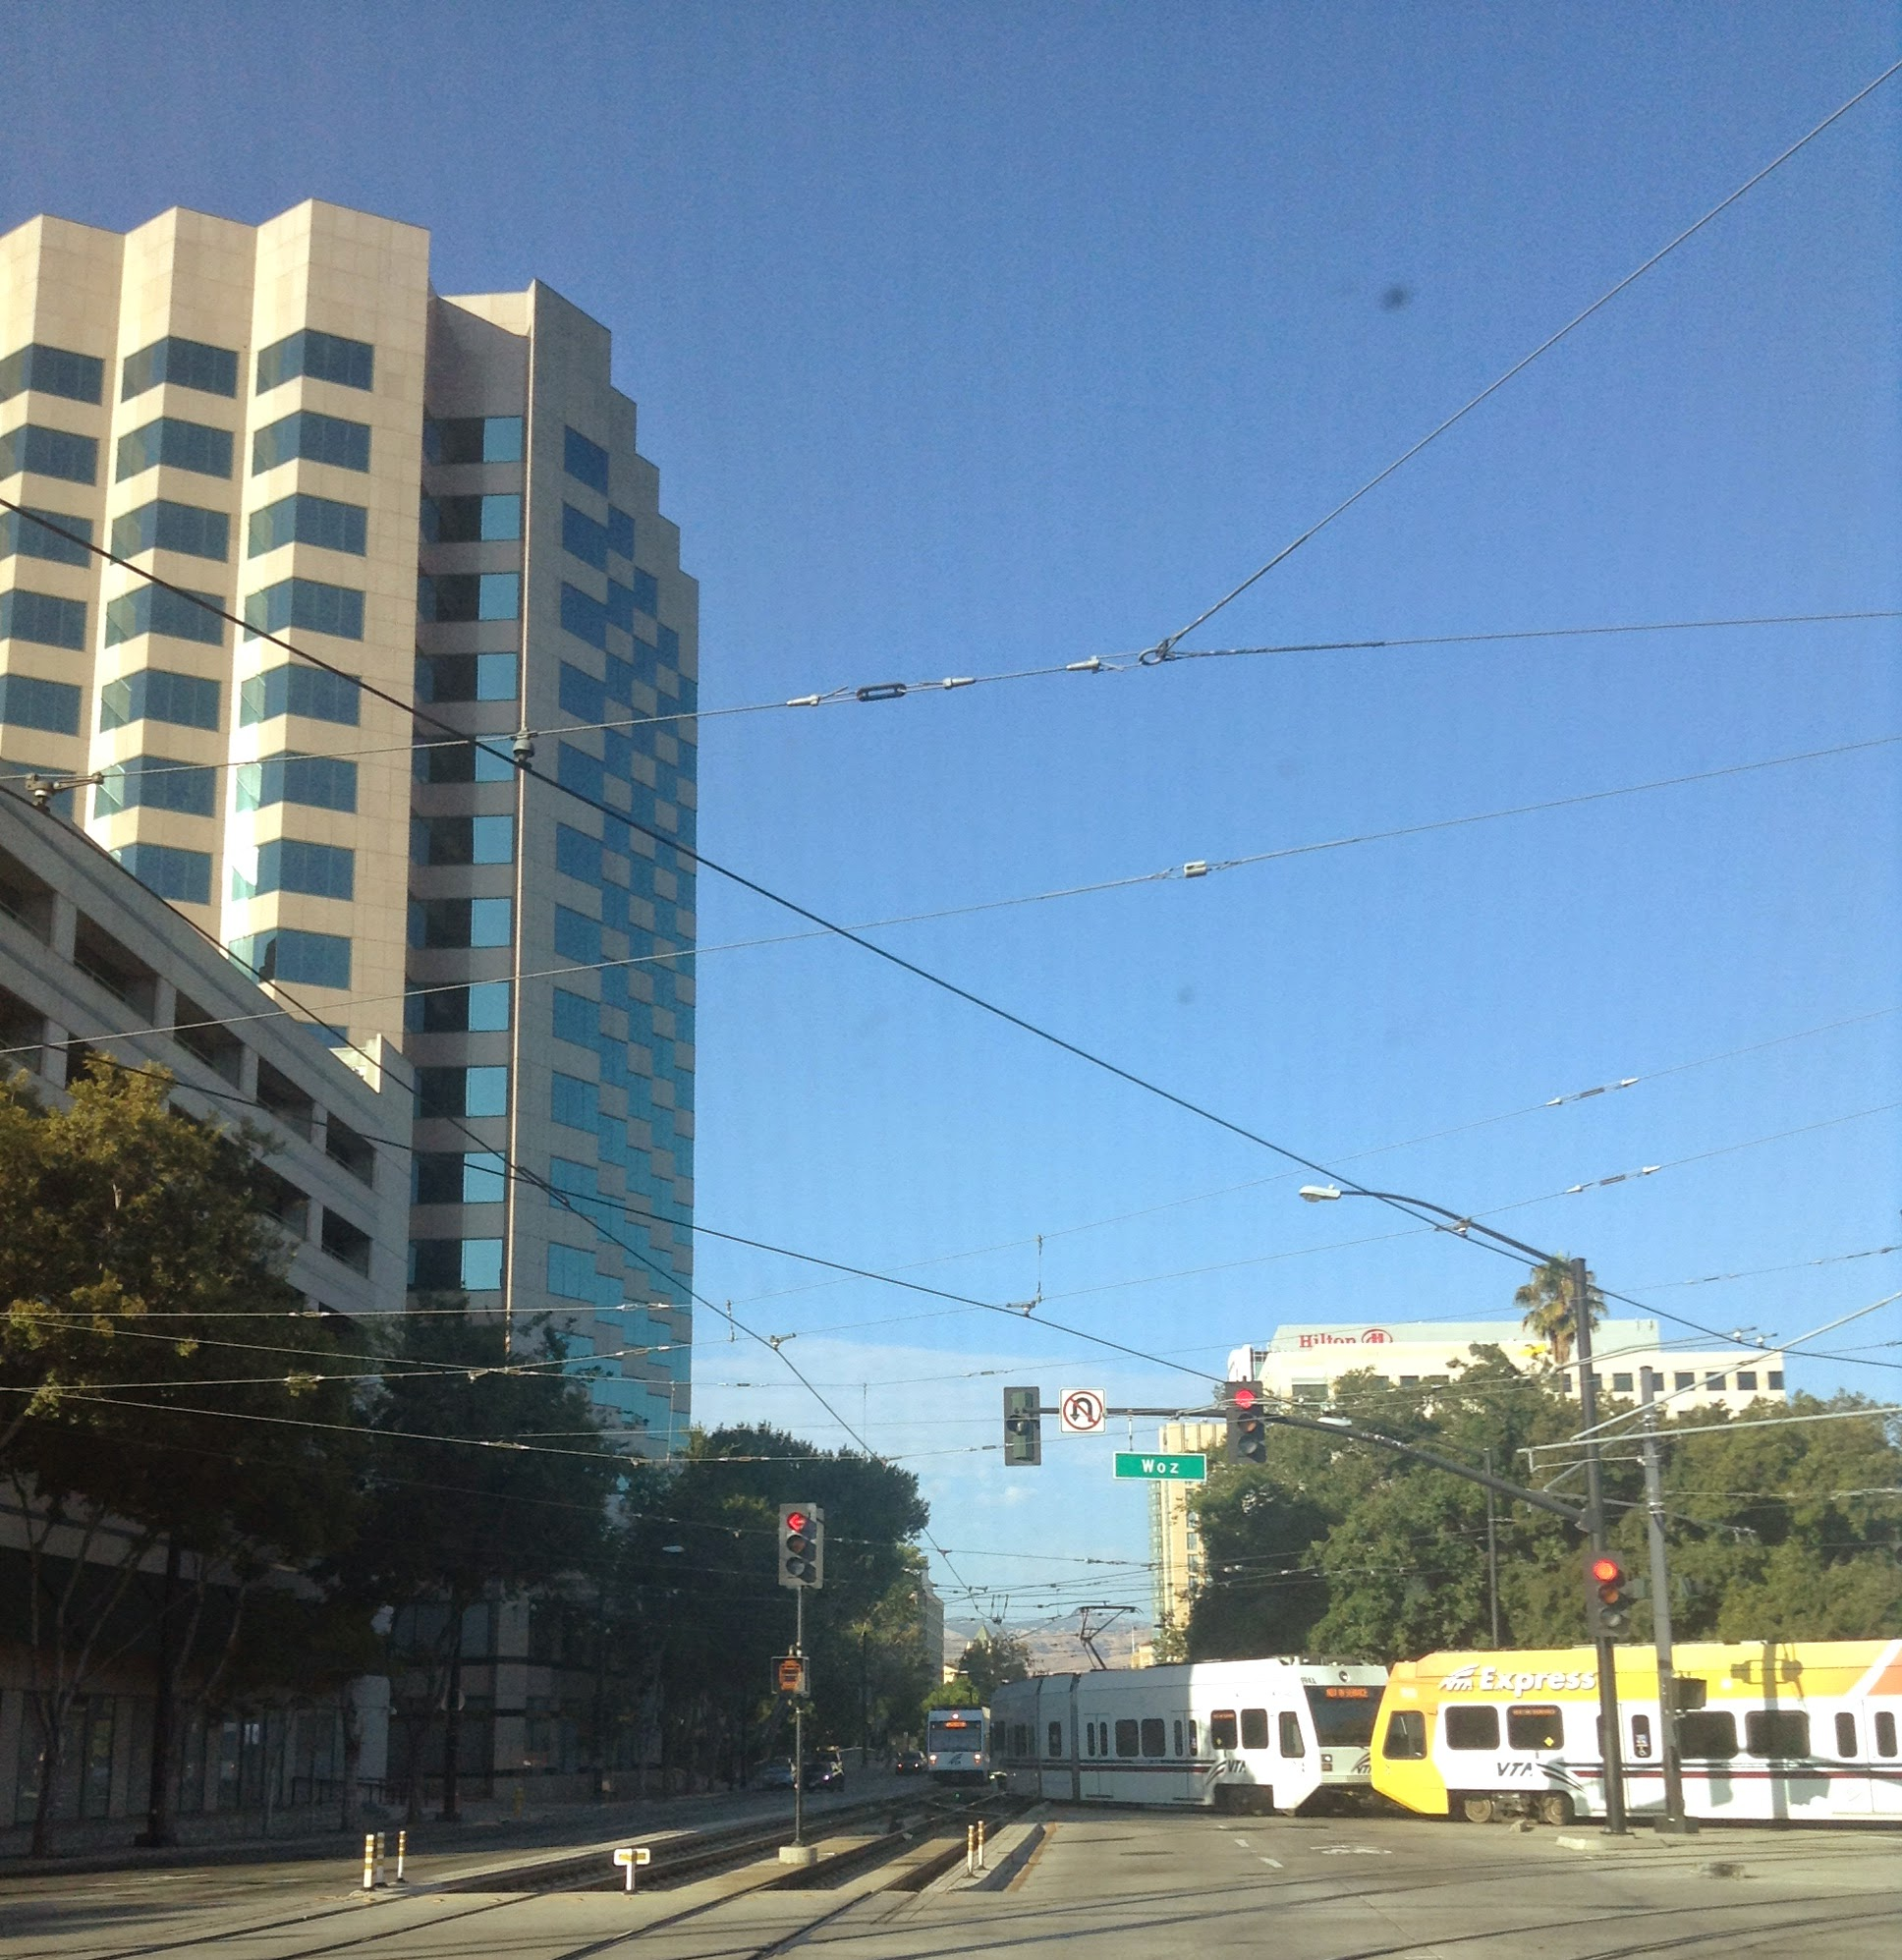 Downtown San Jose CA - on the way to Tech In Motion Meetup